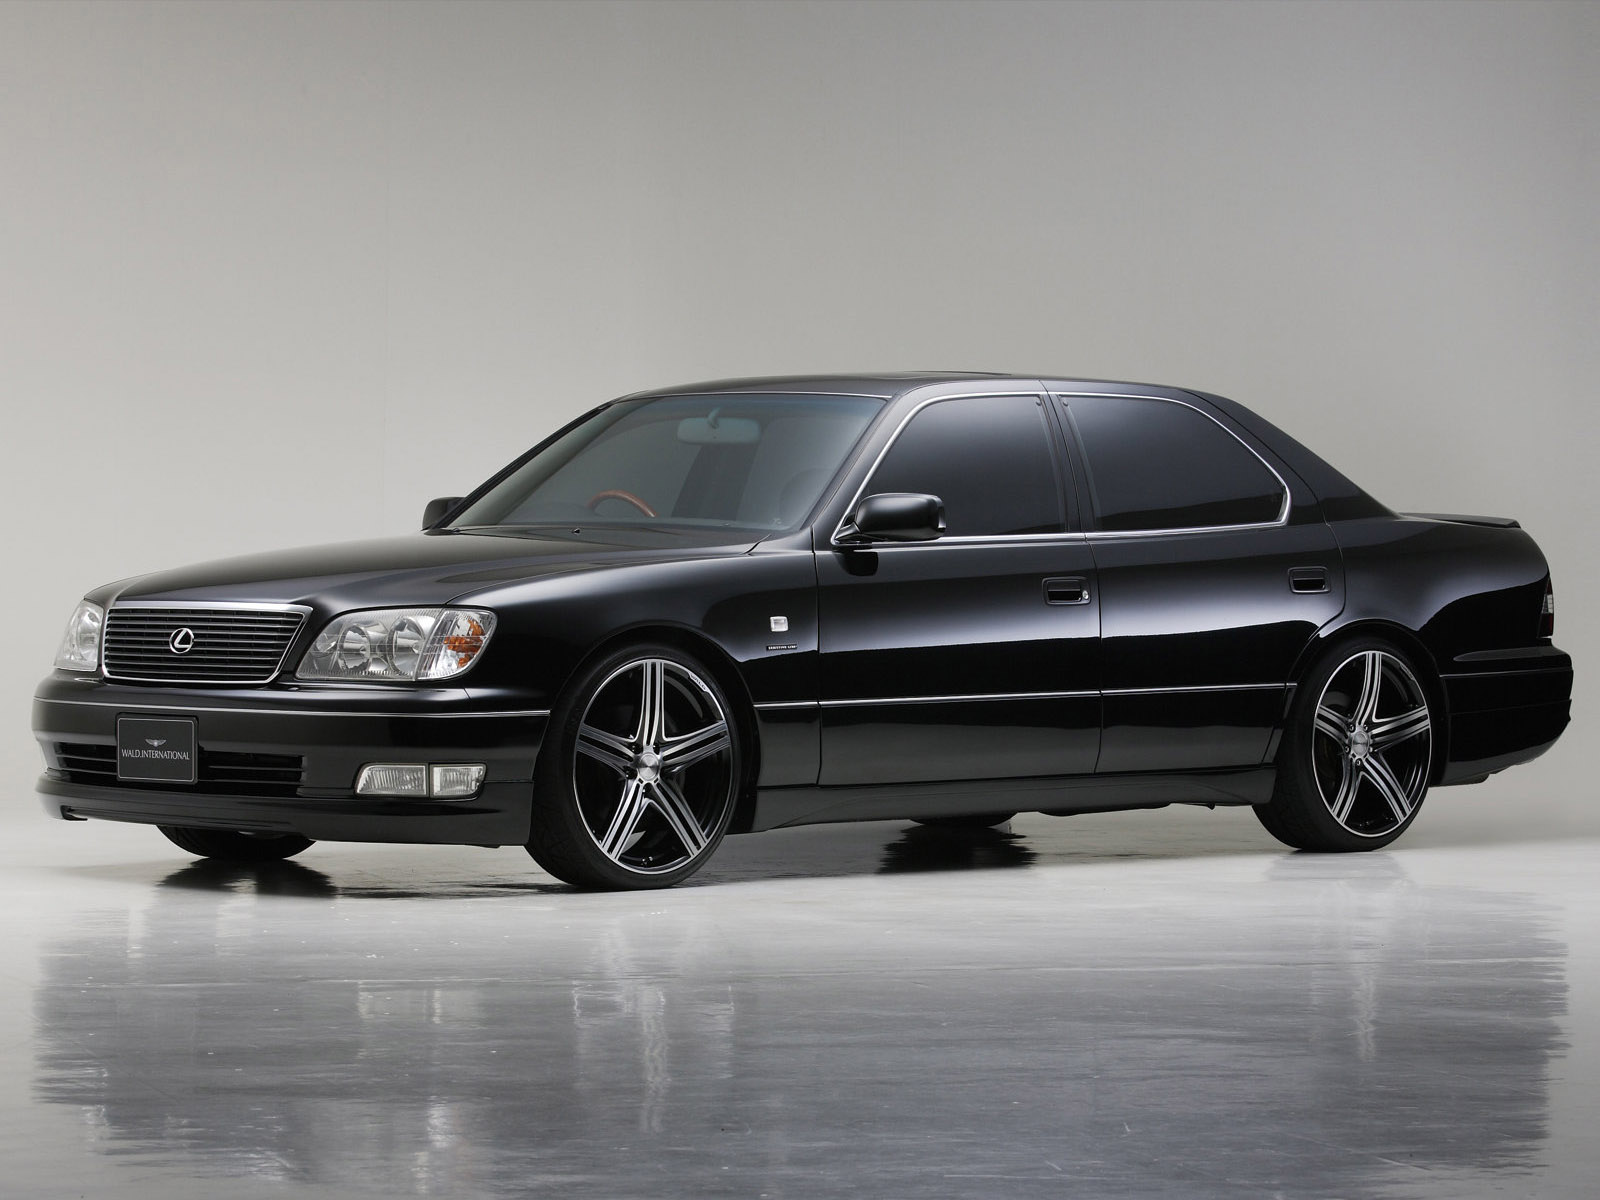 list of synonyms and antonyms of the word: 2003 lexus ls400